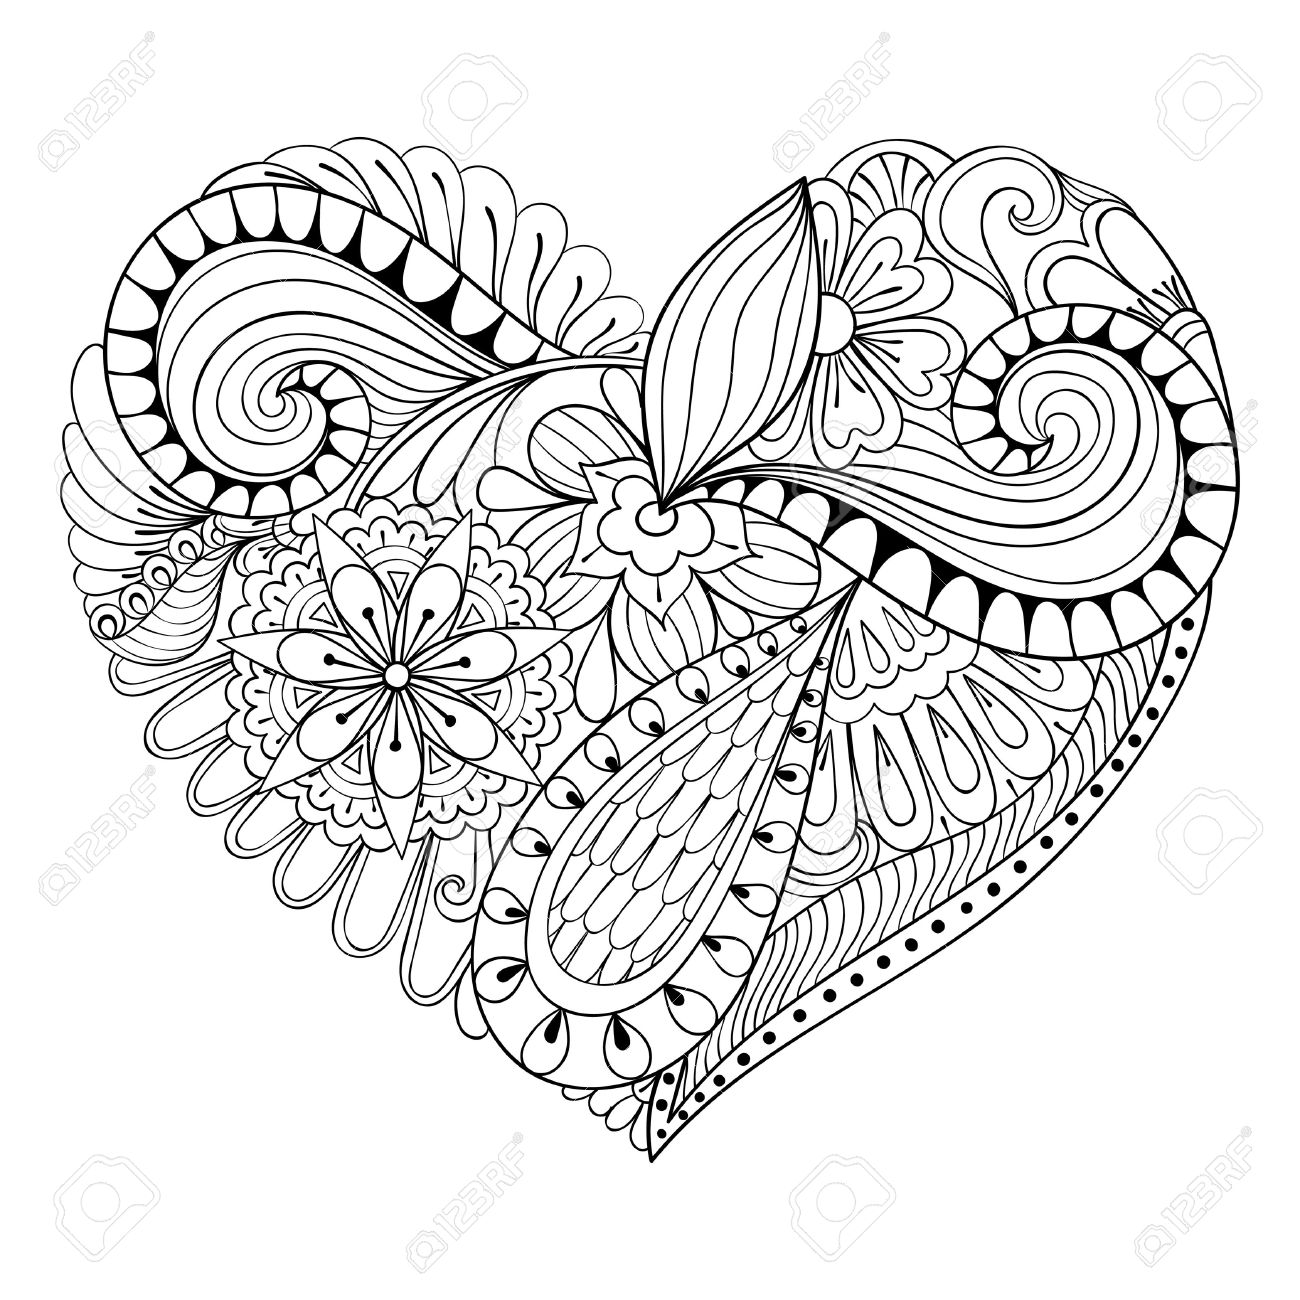 1300x1300 Artistic Floral Doodle Heart In Zentangle Style For Adult Coloring